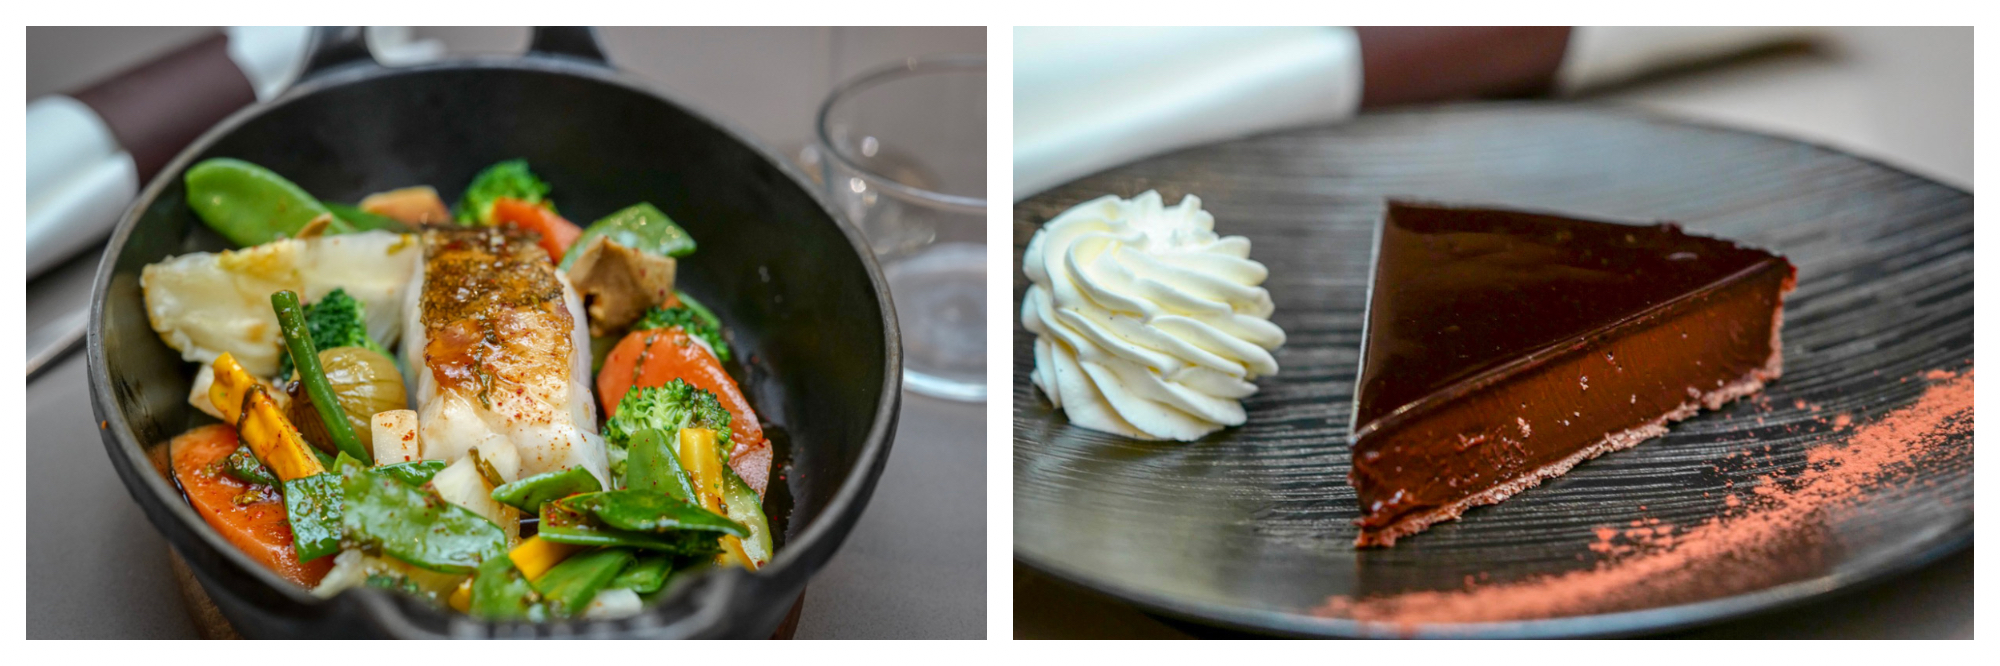 On the left, Les Cocottes in Paris offers seared fish with spring vegetables. On the right, the restaurant's creamy chocolate torte.